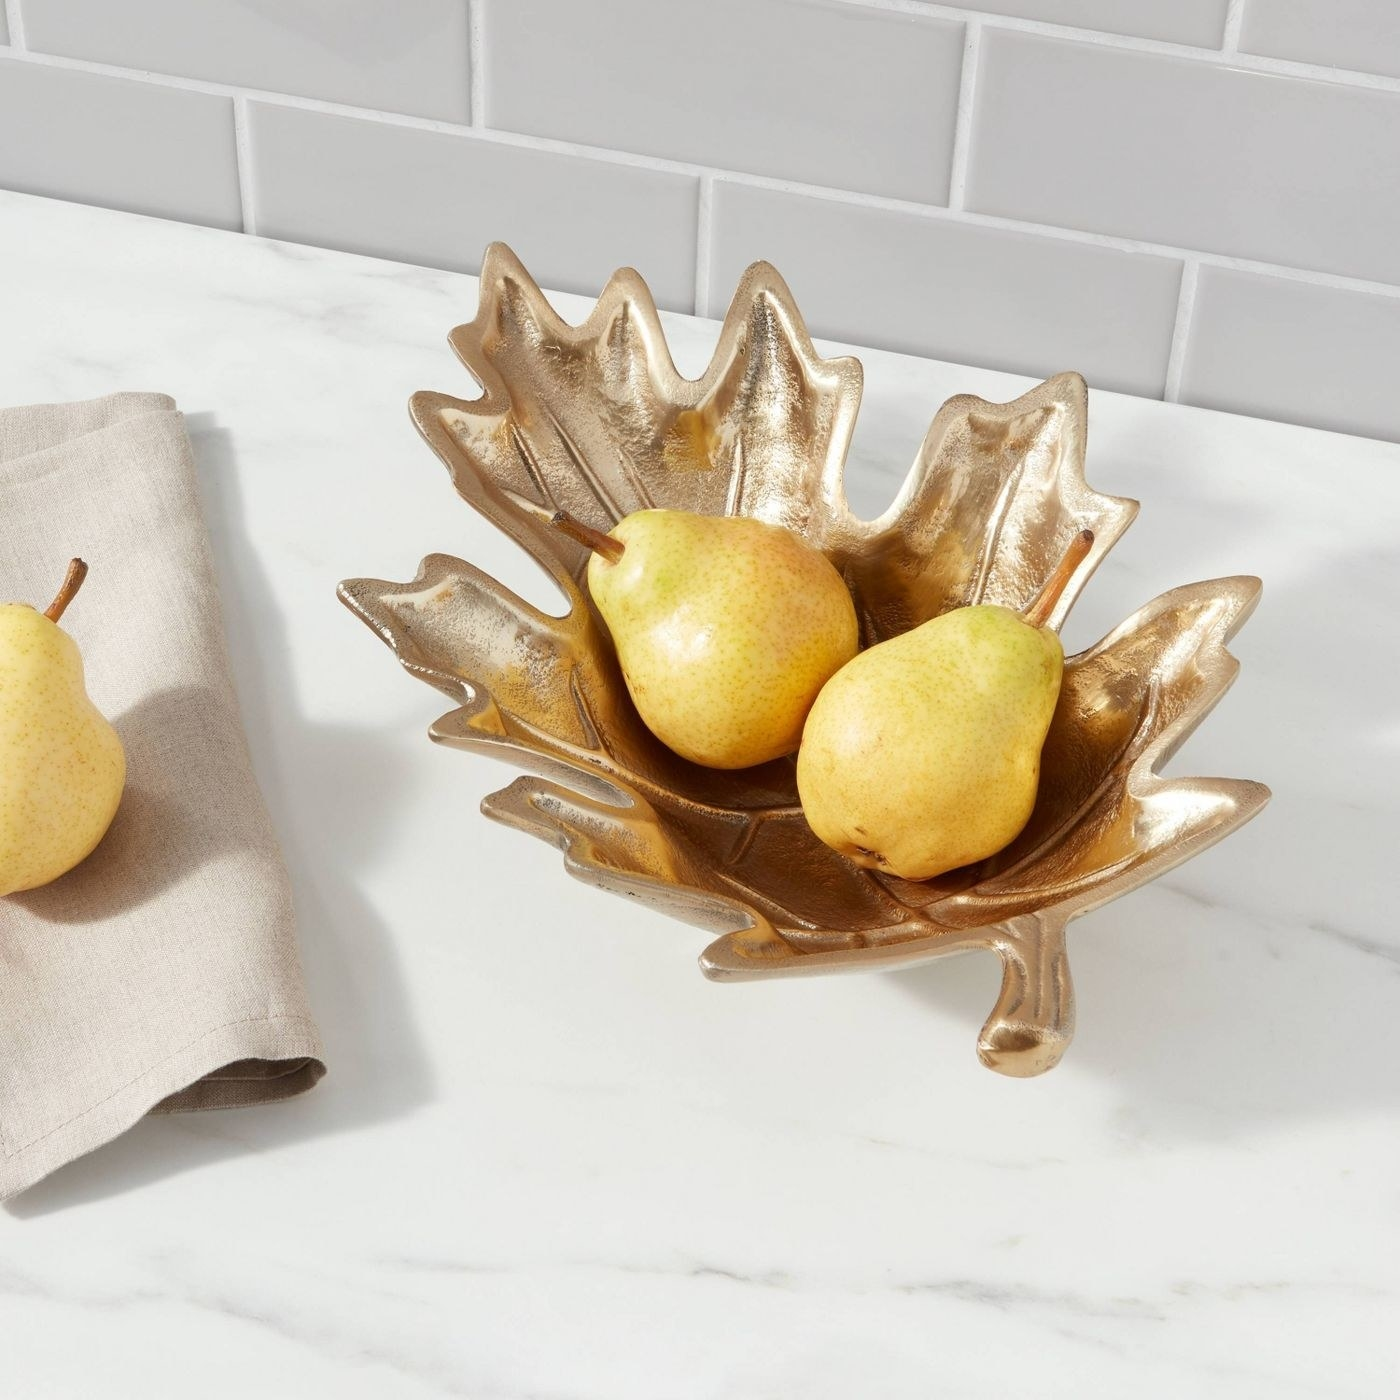 the gold leaf serving tray with two pears inside